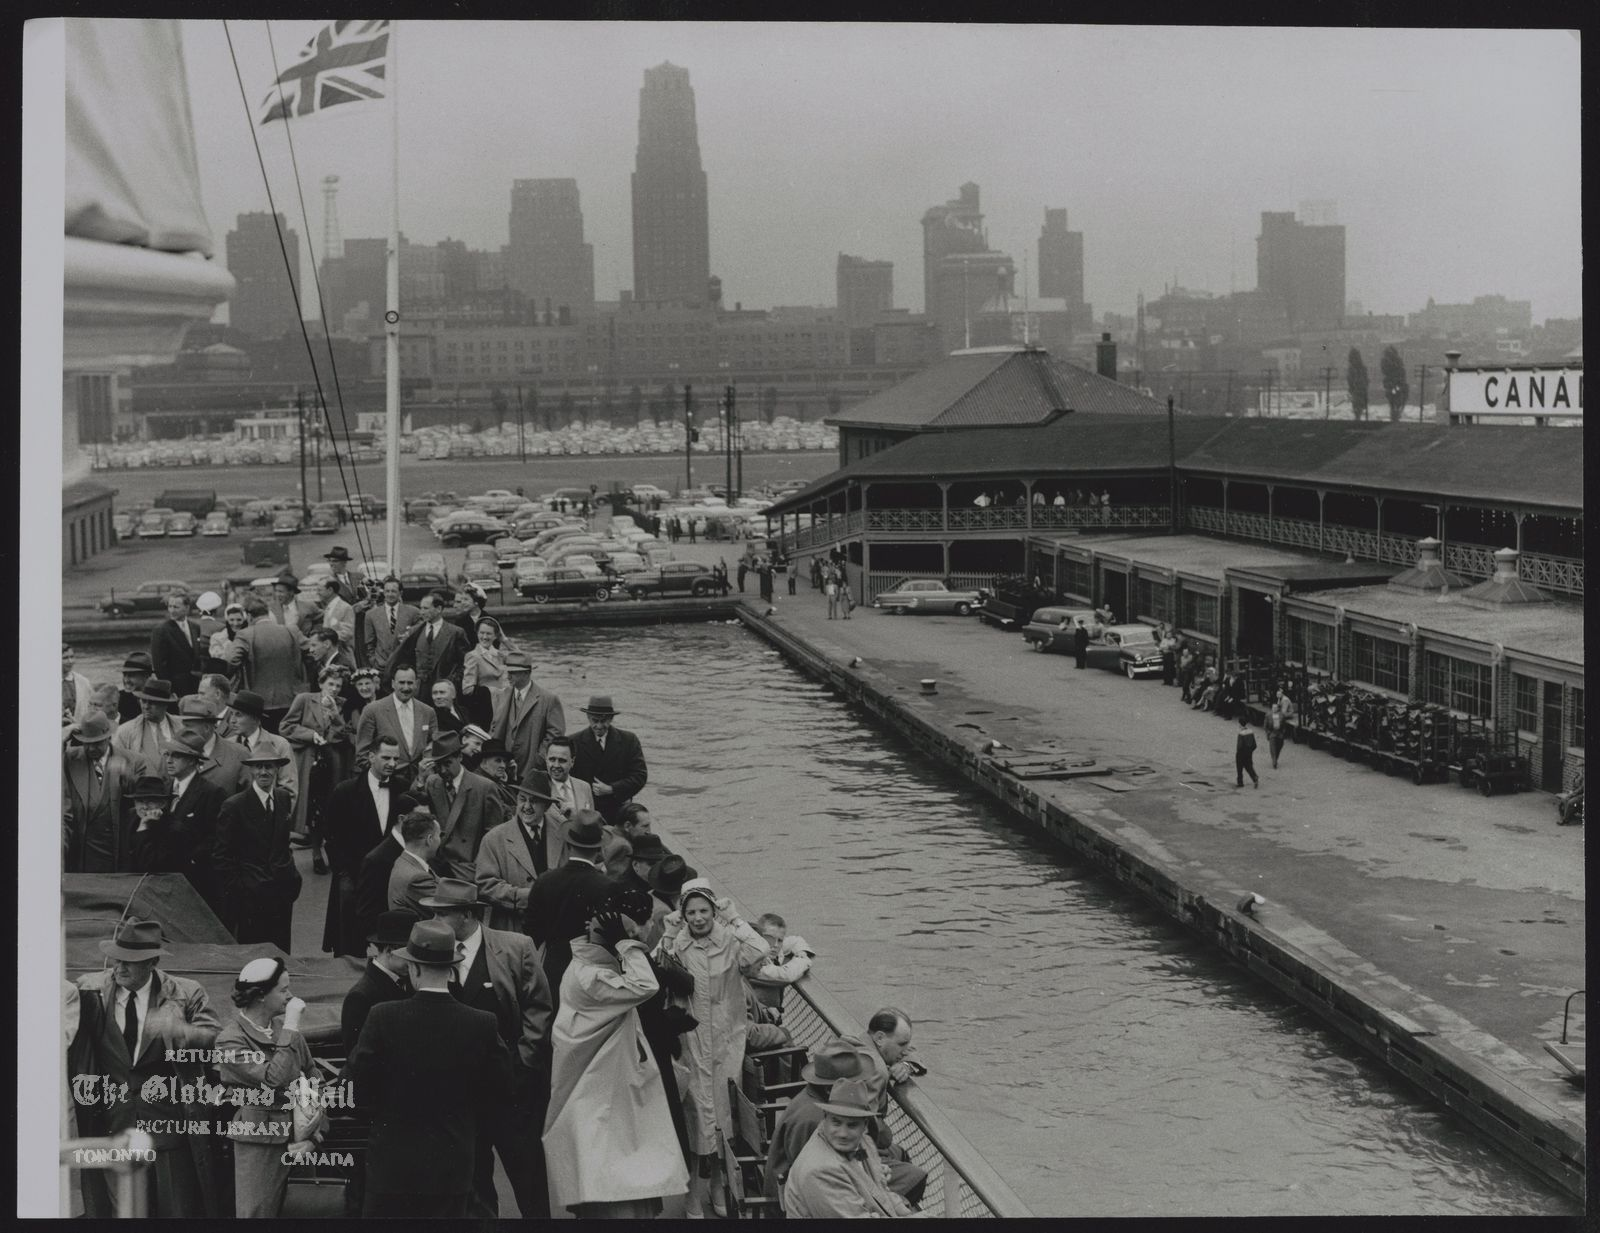 SS CAYUGA (SHIP) TORONTO'S SKYLINE IS SEEN FROM THE DECKS OF THE CAYUGA -- Toronto's skyline is seen from the decks as passengers climbed aboard. Crowd of about 300 made voyage around Toronto Island. It was the Cayuga's first trip in nearly three years, June 3, 1954